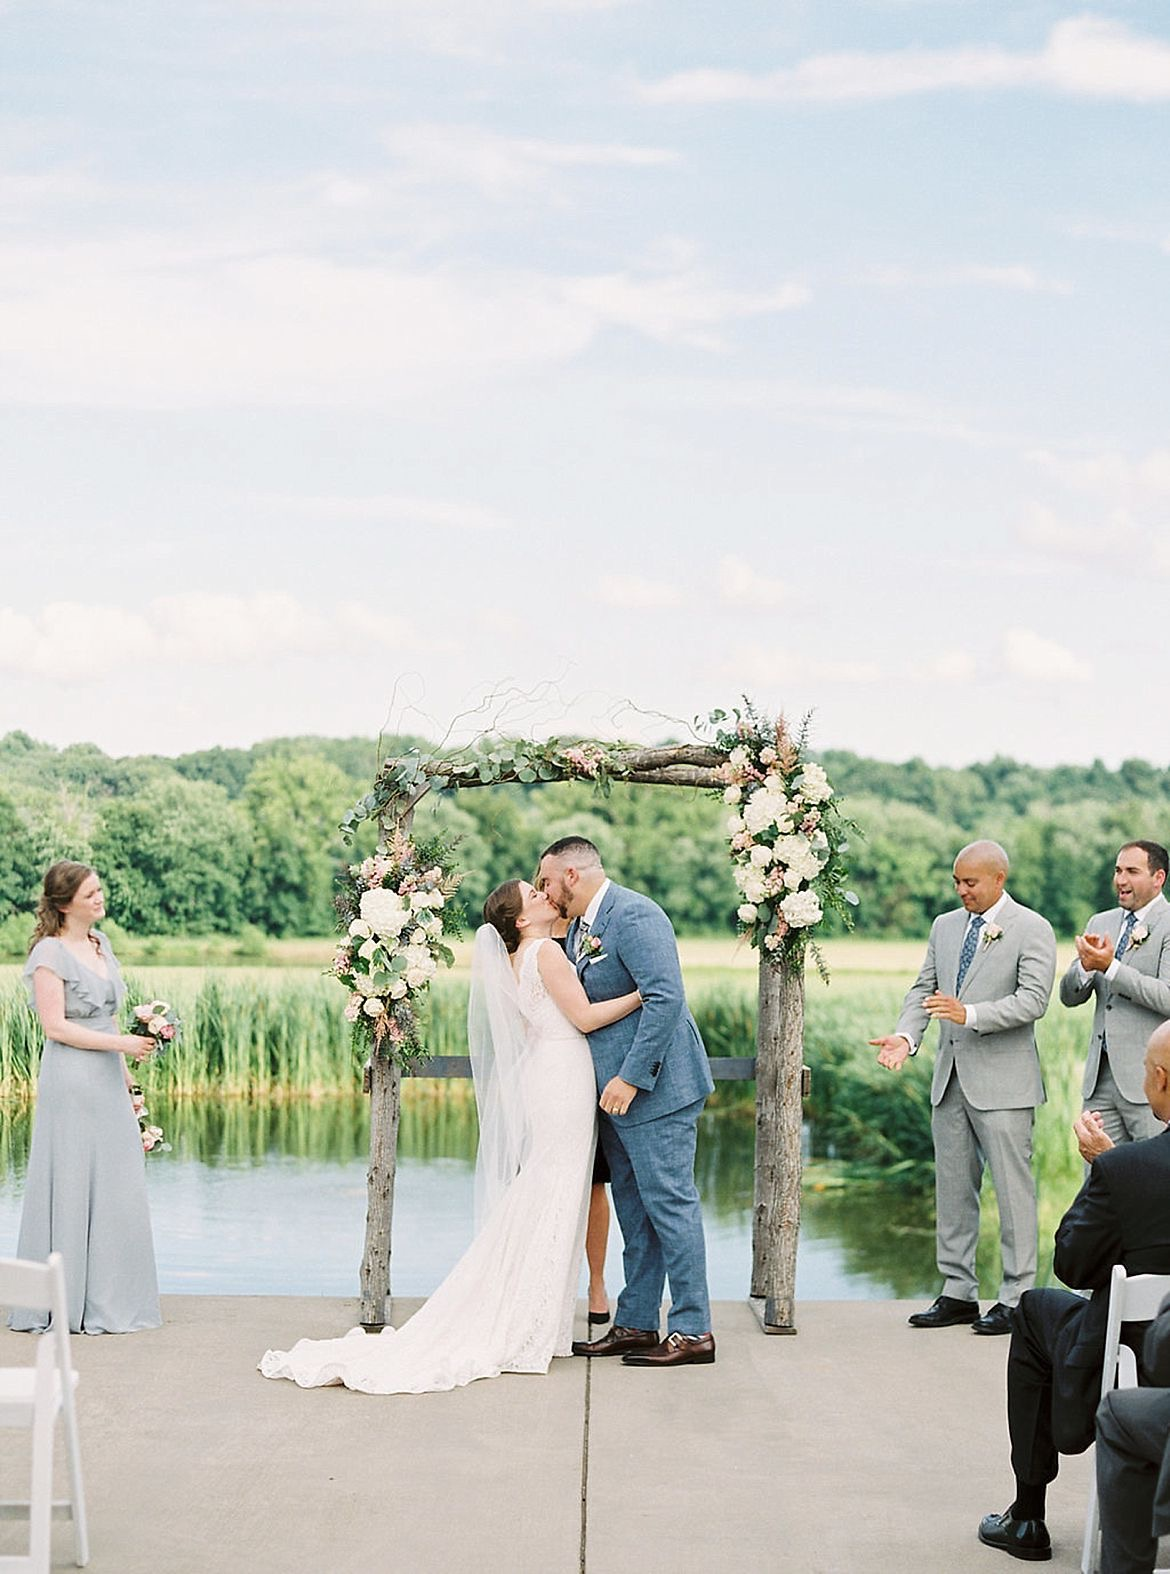 Rustic Riverside Wedding